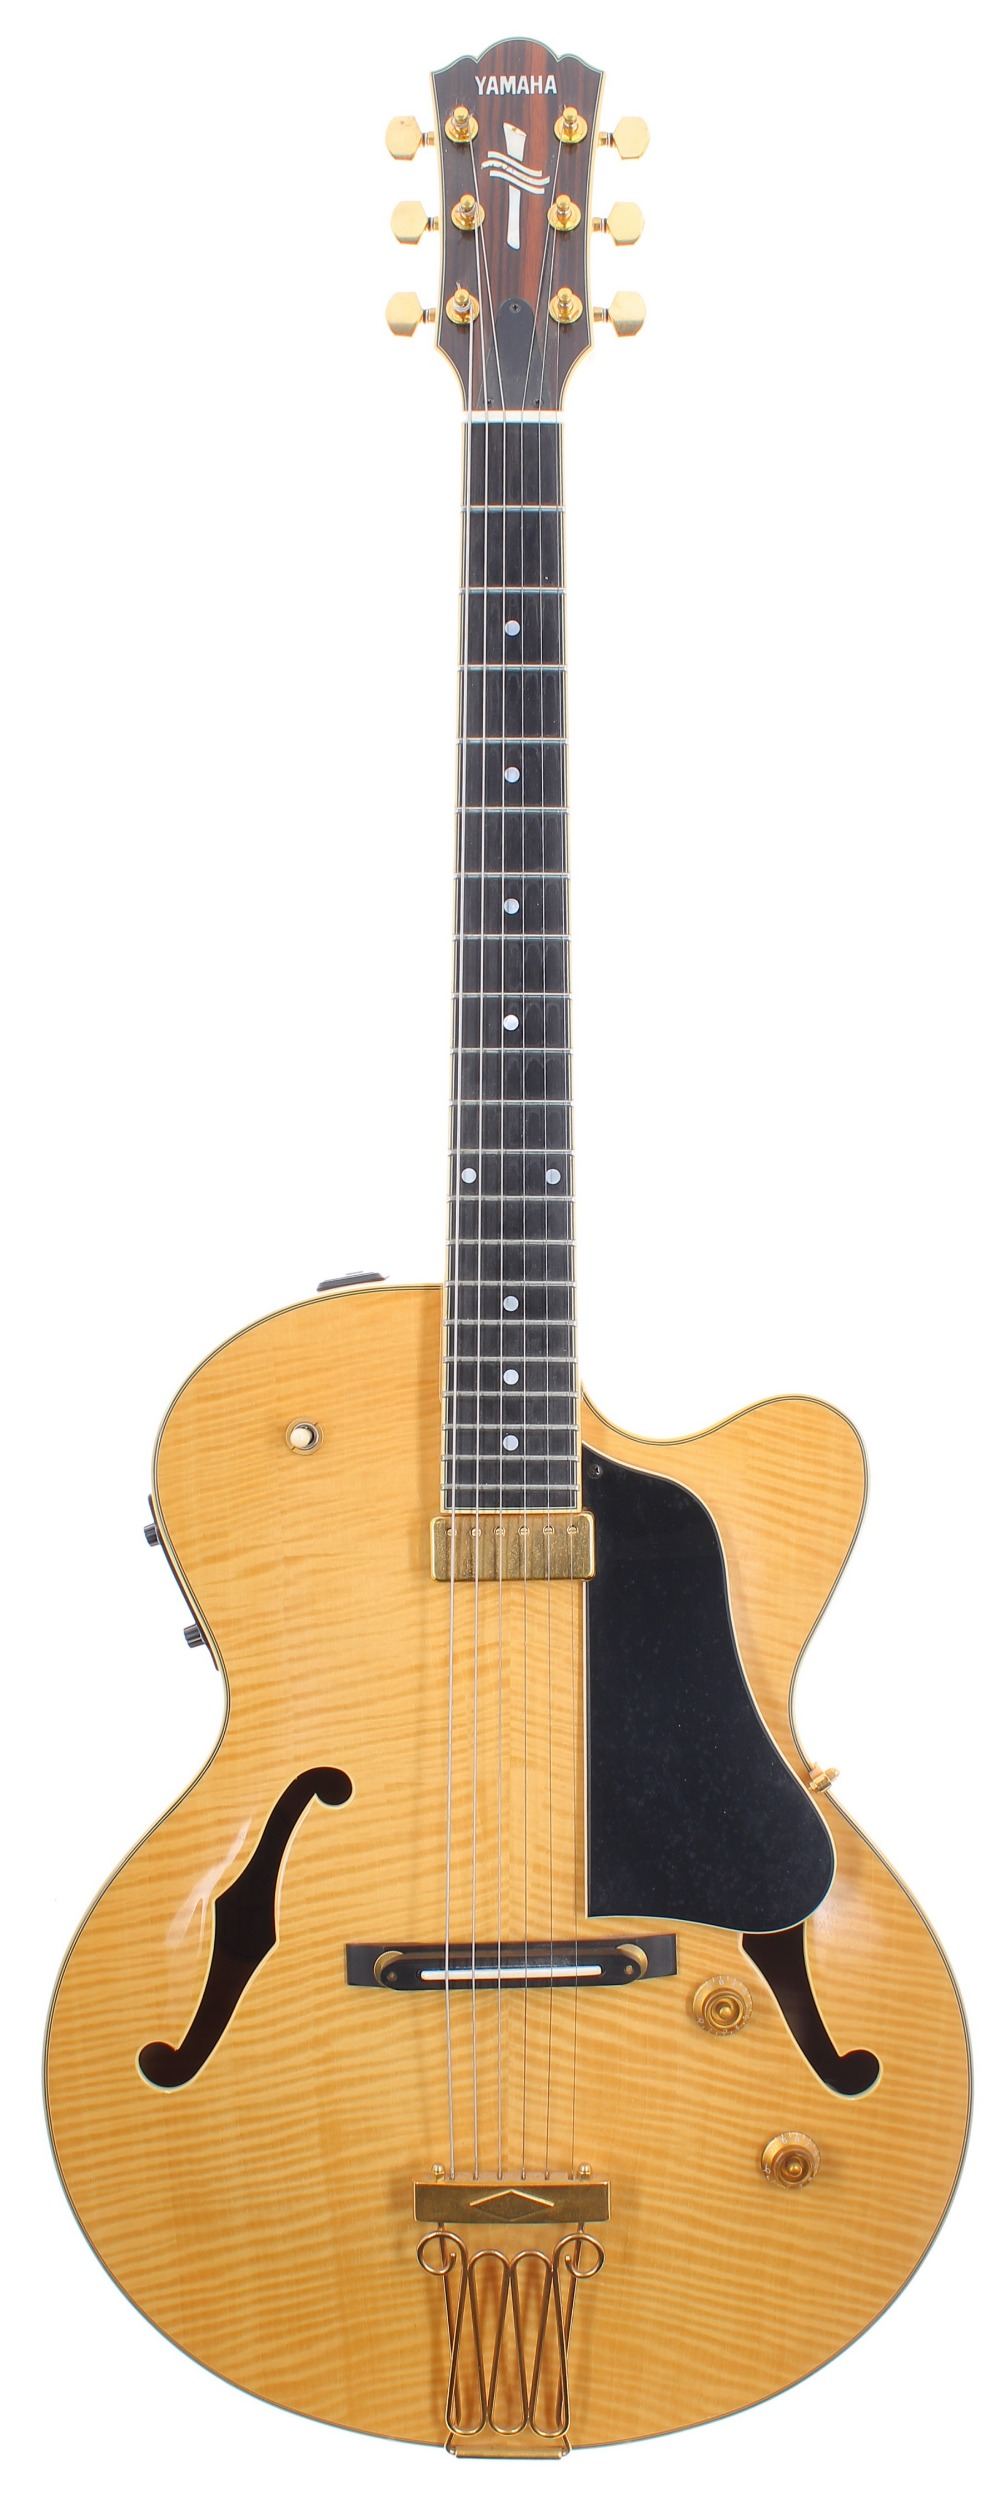 1999 Yamaha AEX1500 hollow body electric guitar, made in Japan, ser. no. 9xxxxx8; Finish: natural;